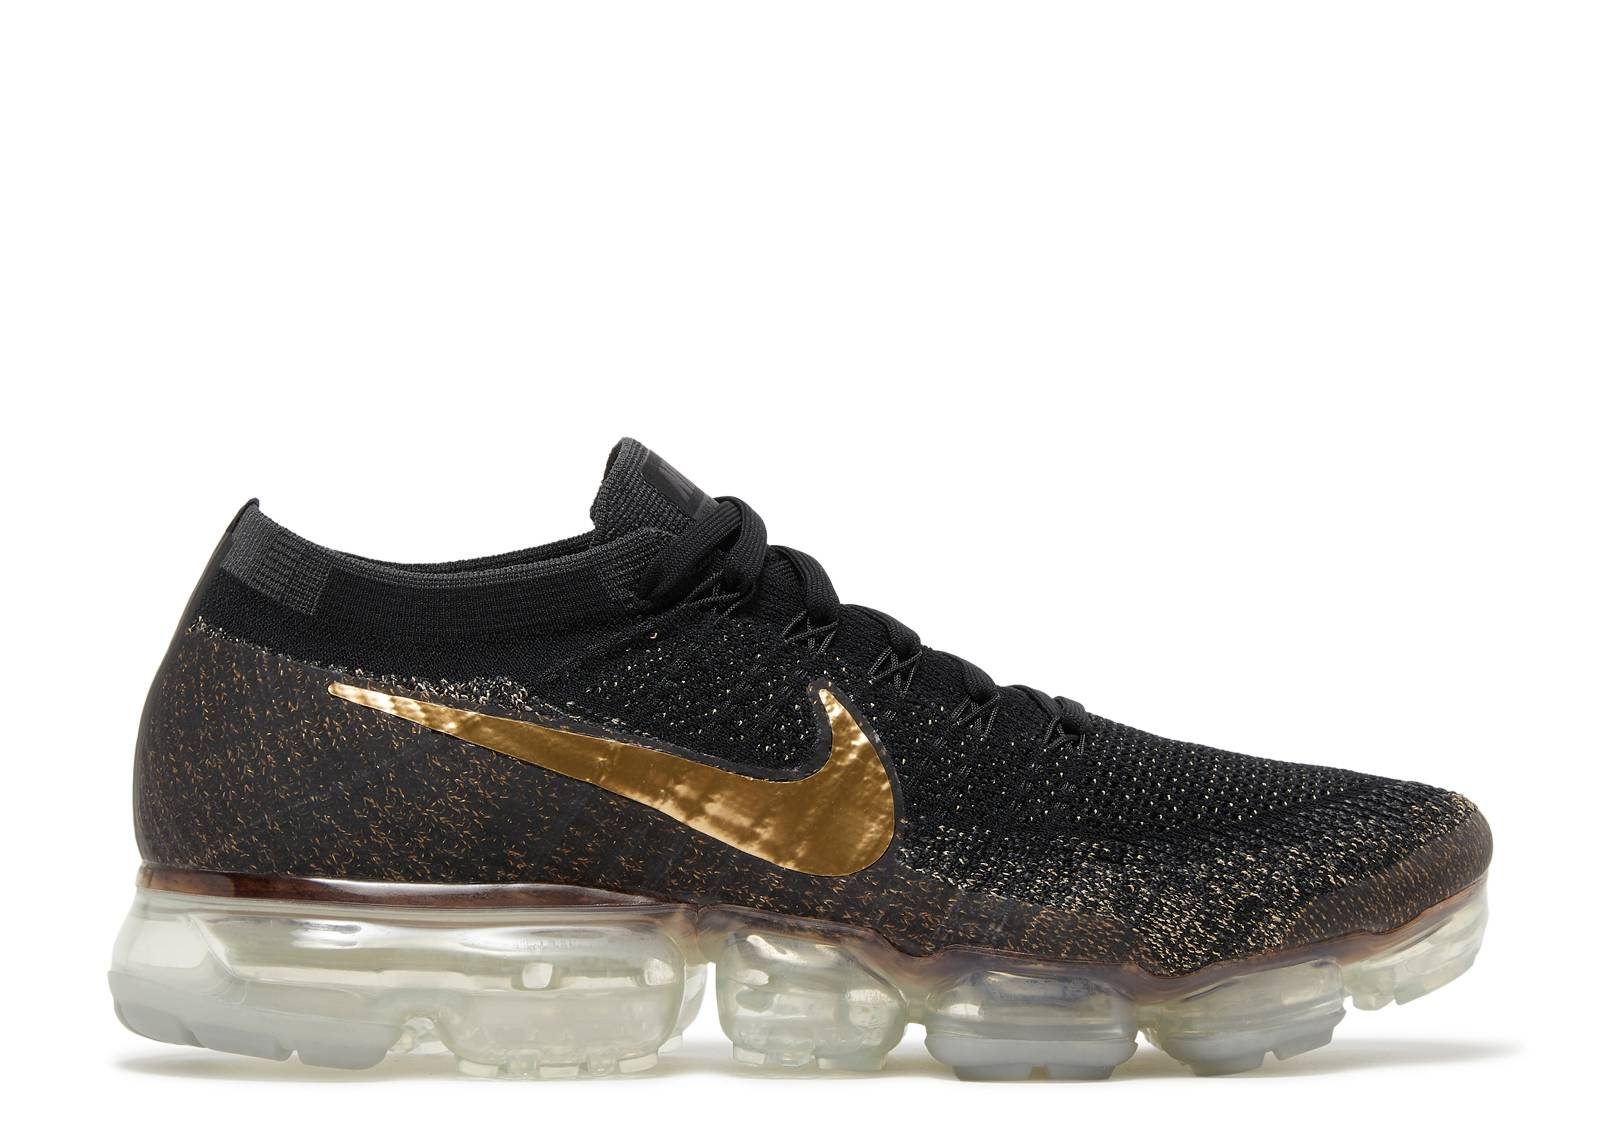 Nike Women's Air Max Flyknit Metallic Gold Pack